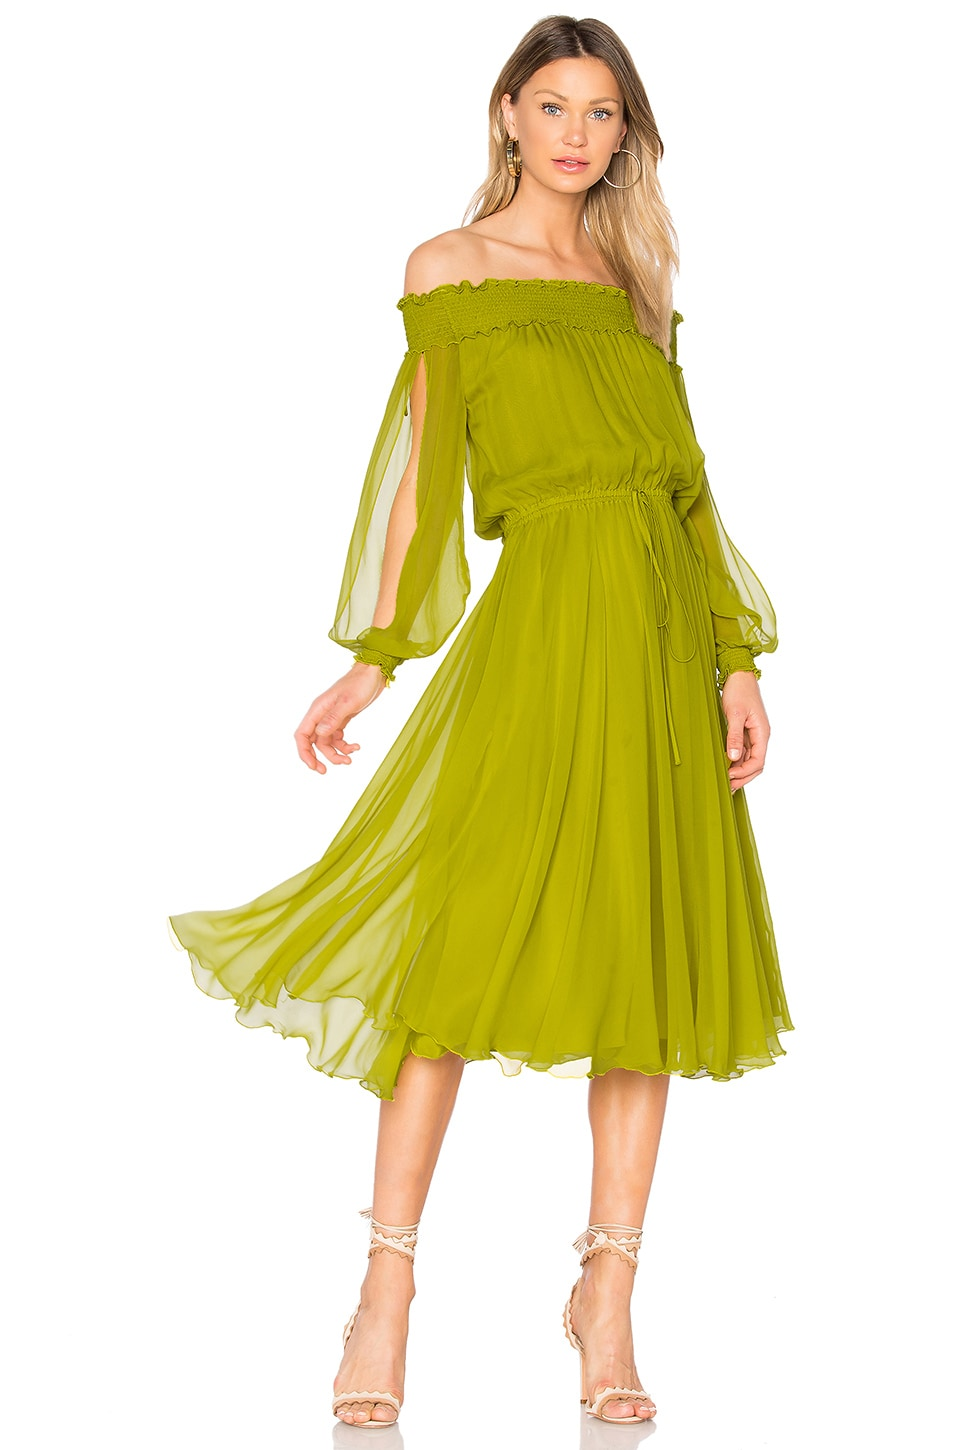 Erin Fetherston La Boheme Dress in Peridot